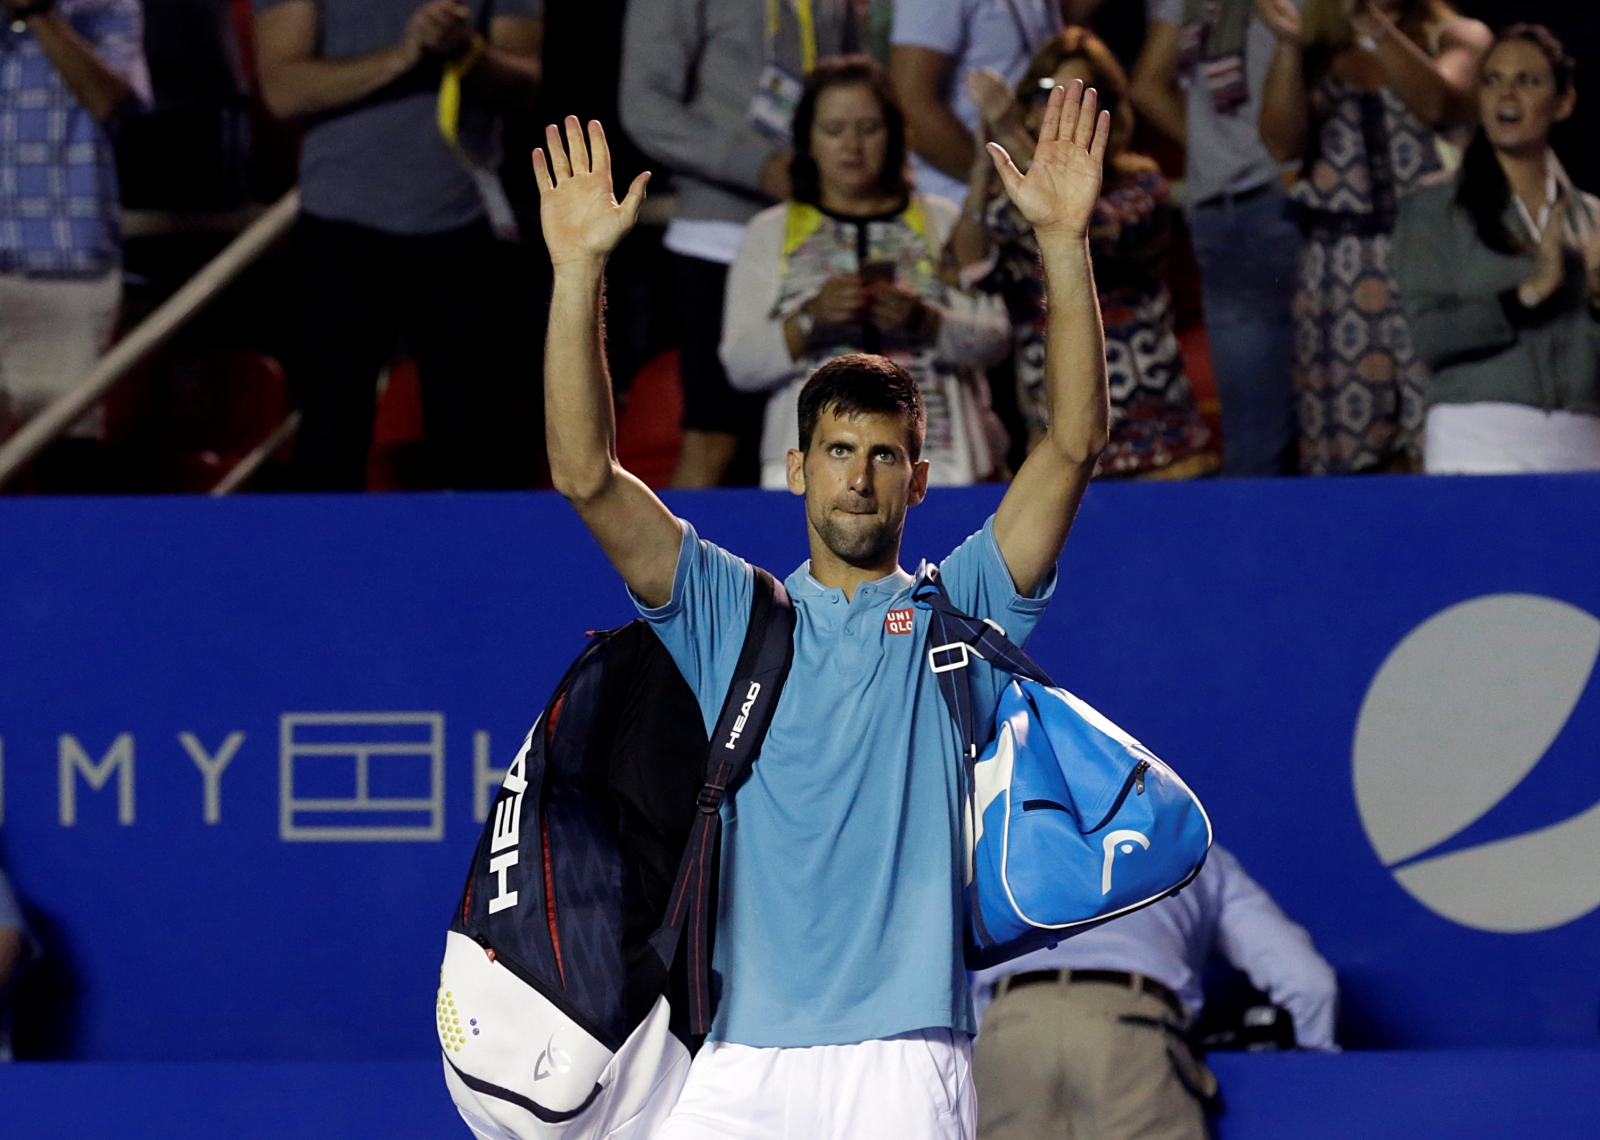 Djokovic and Murray try to regain their confidence in Madrid